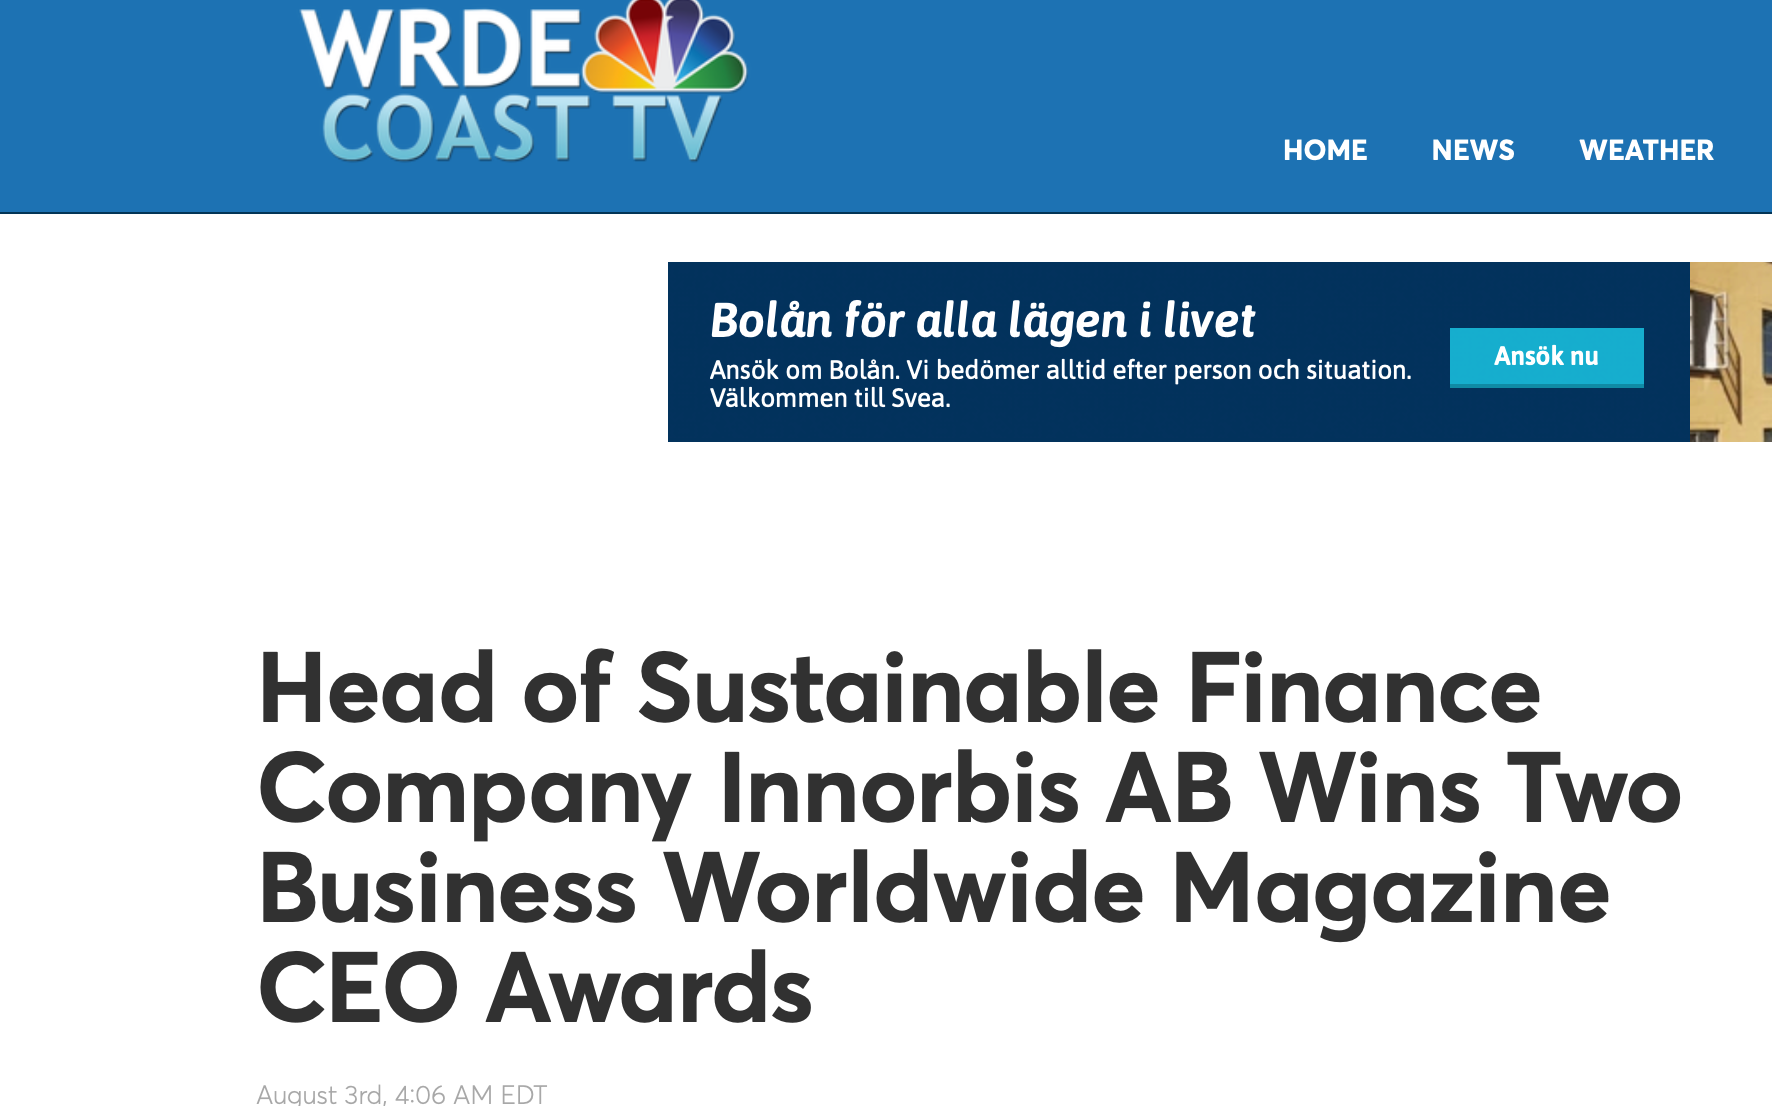 WRDE COAST TV: Best CEO in the Sustainability / ESG Systems Industry' & 'Tech Entrepreneur of the Year - Sweden'